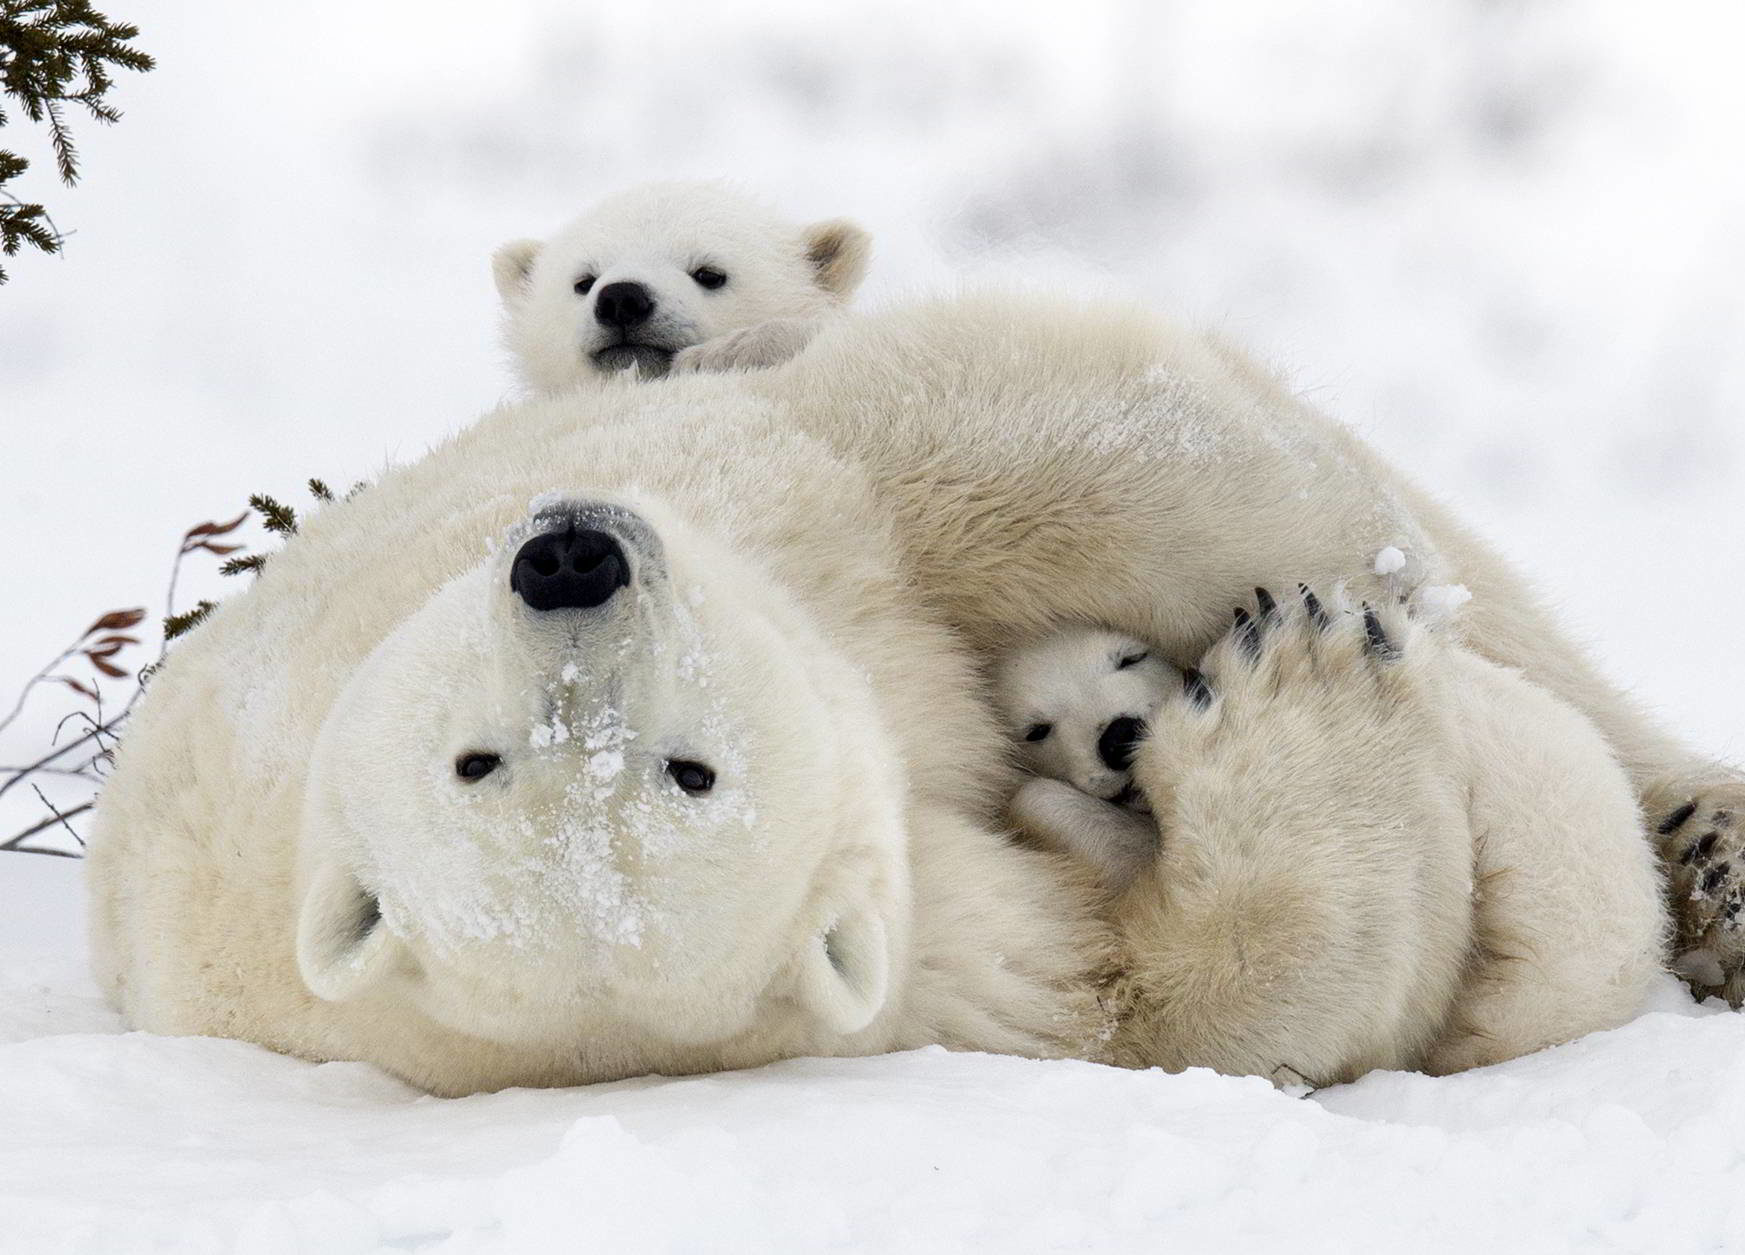 Polar bear with cubs in the Wapusk National Park, Churchill, Manitoba, Canada